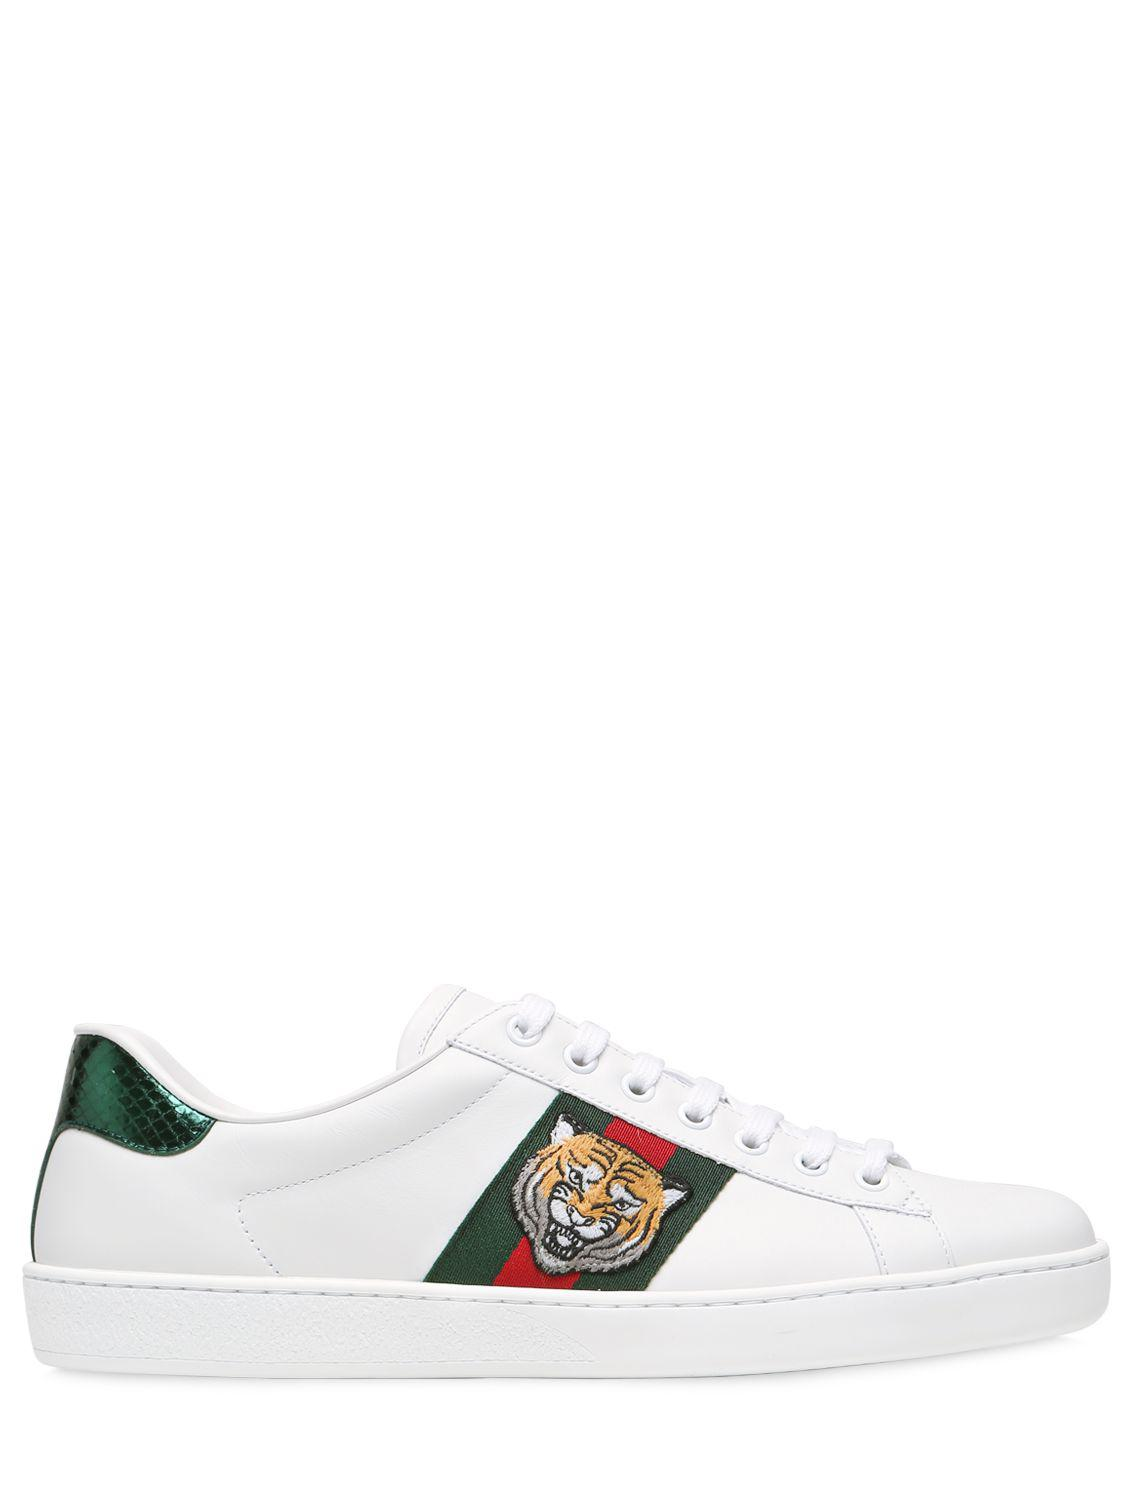 Gucci White Ace Tiger Sneakers r1LNk5W4